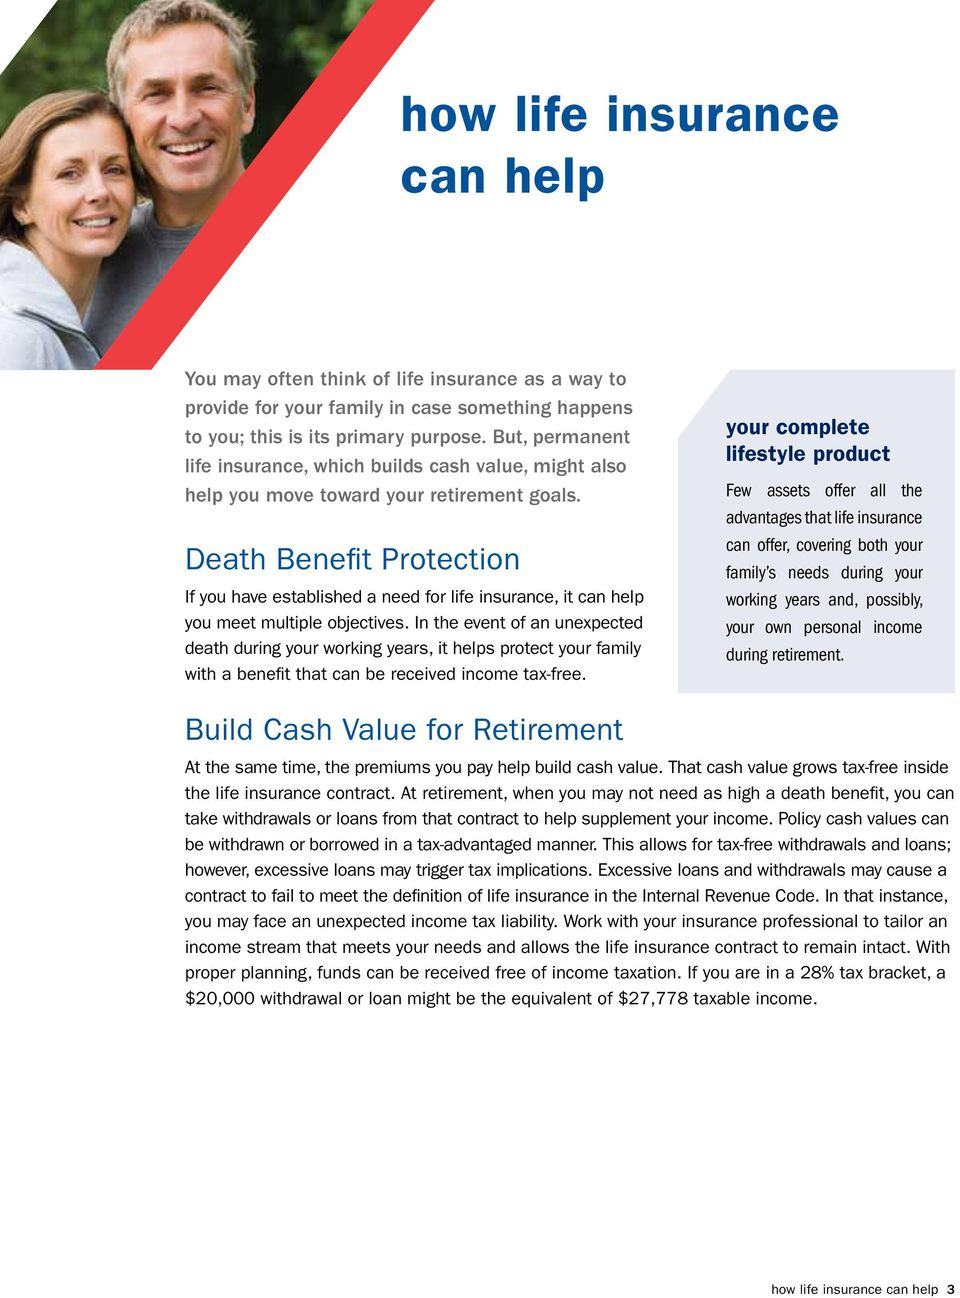 Death Benefit Protection If you have established a need for life insurance, it can help you meet multiple objectives.